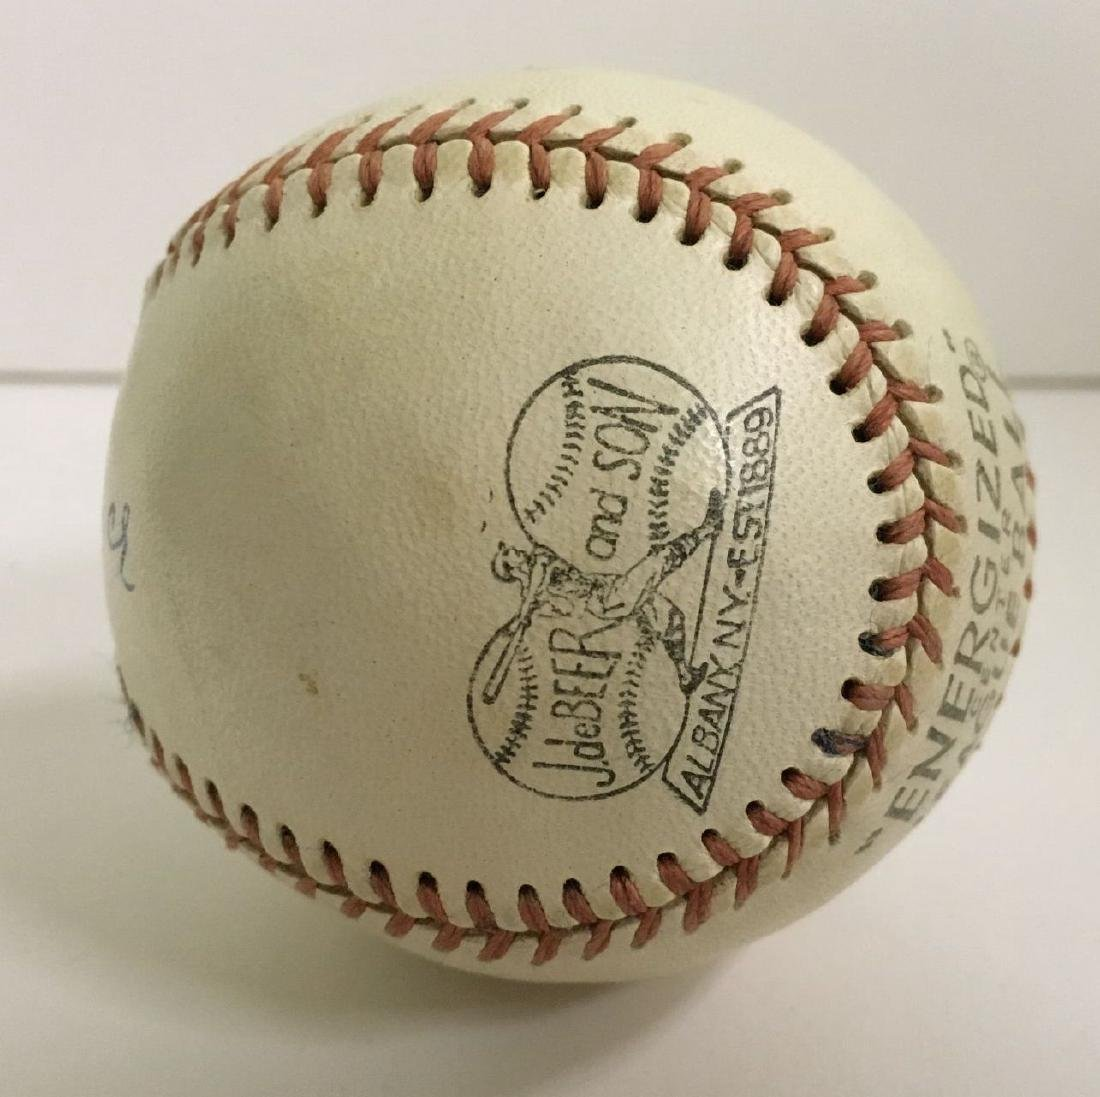 """A.C. """"Dazzy"""" Vance. Signed Baseball. - 2"""